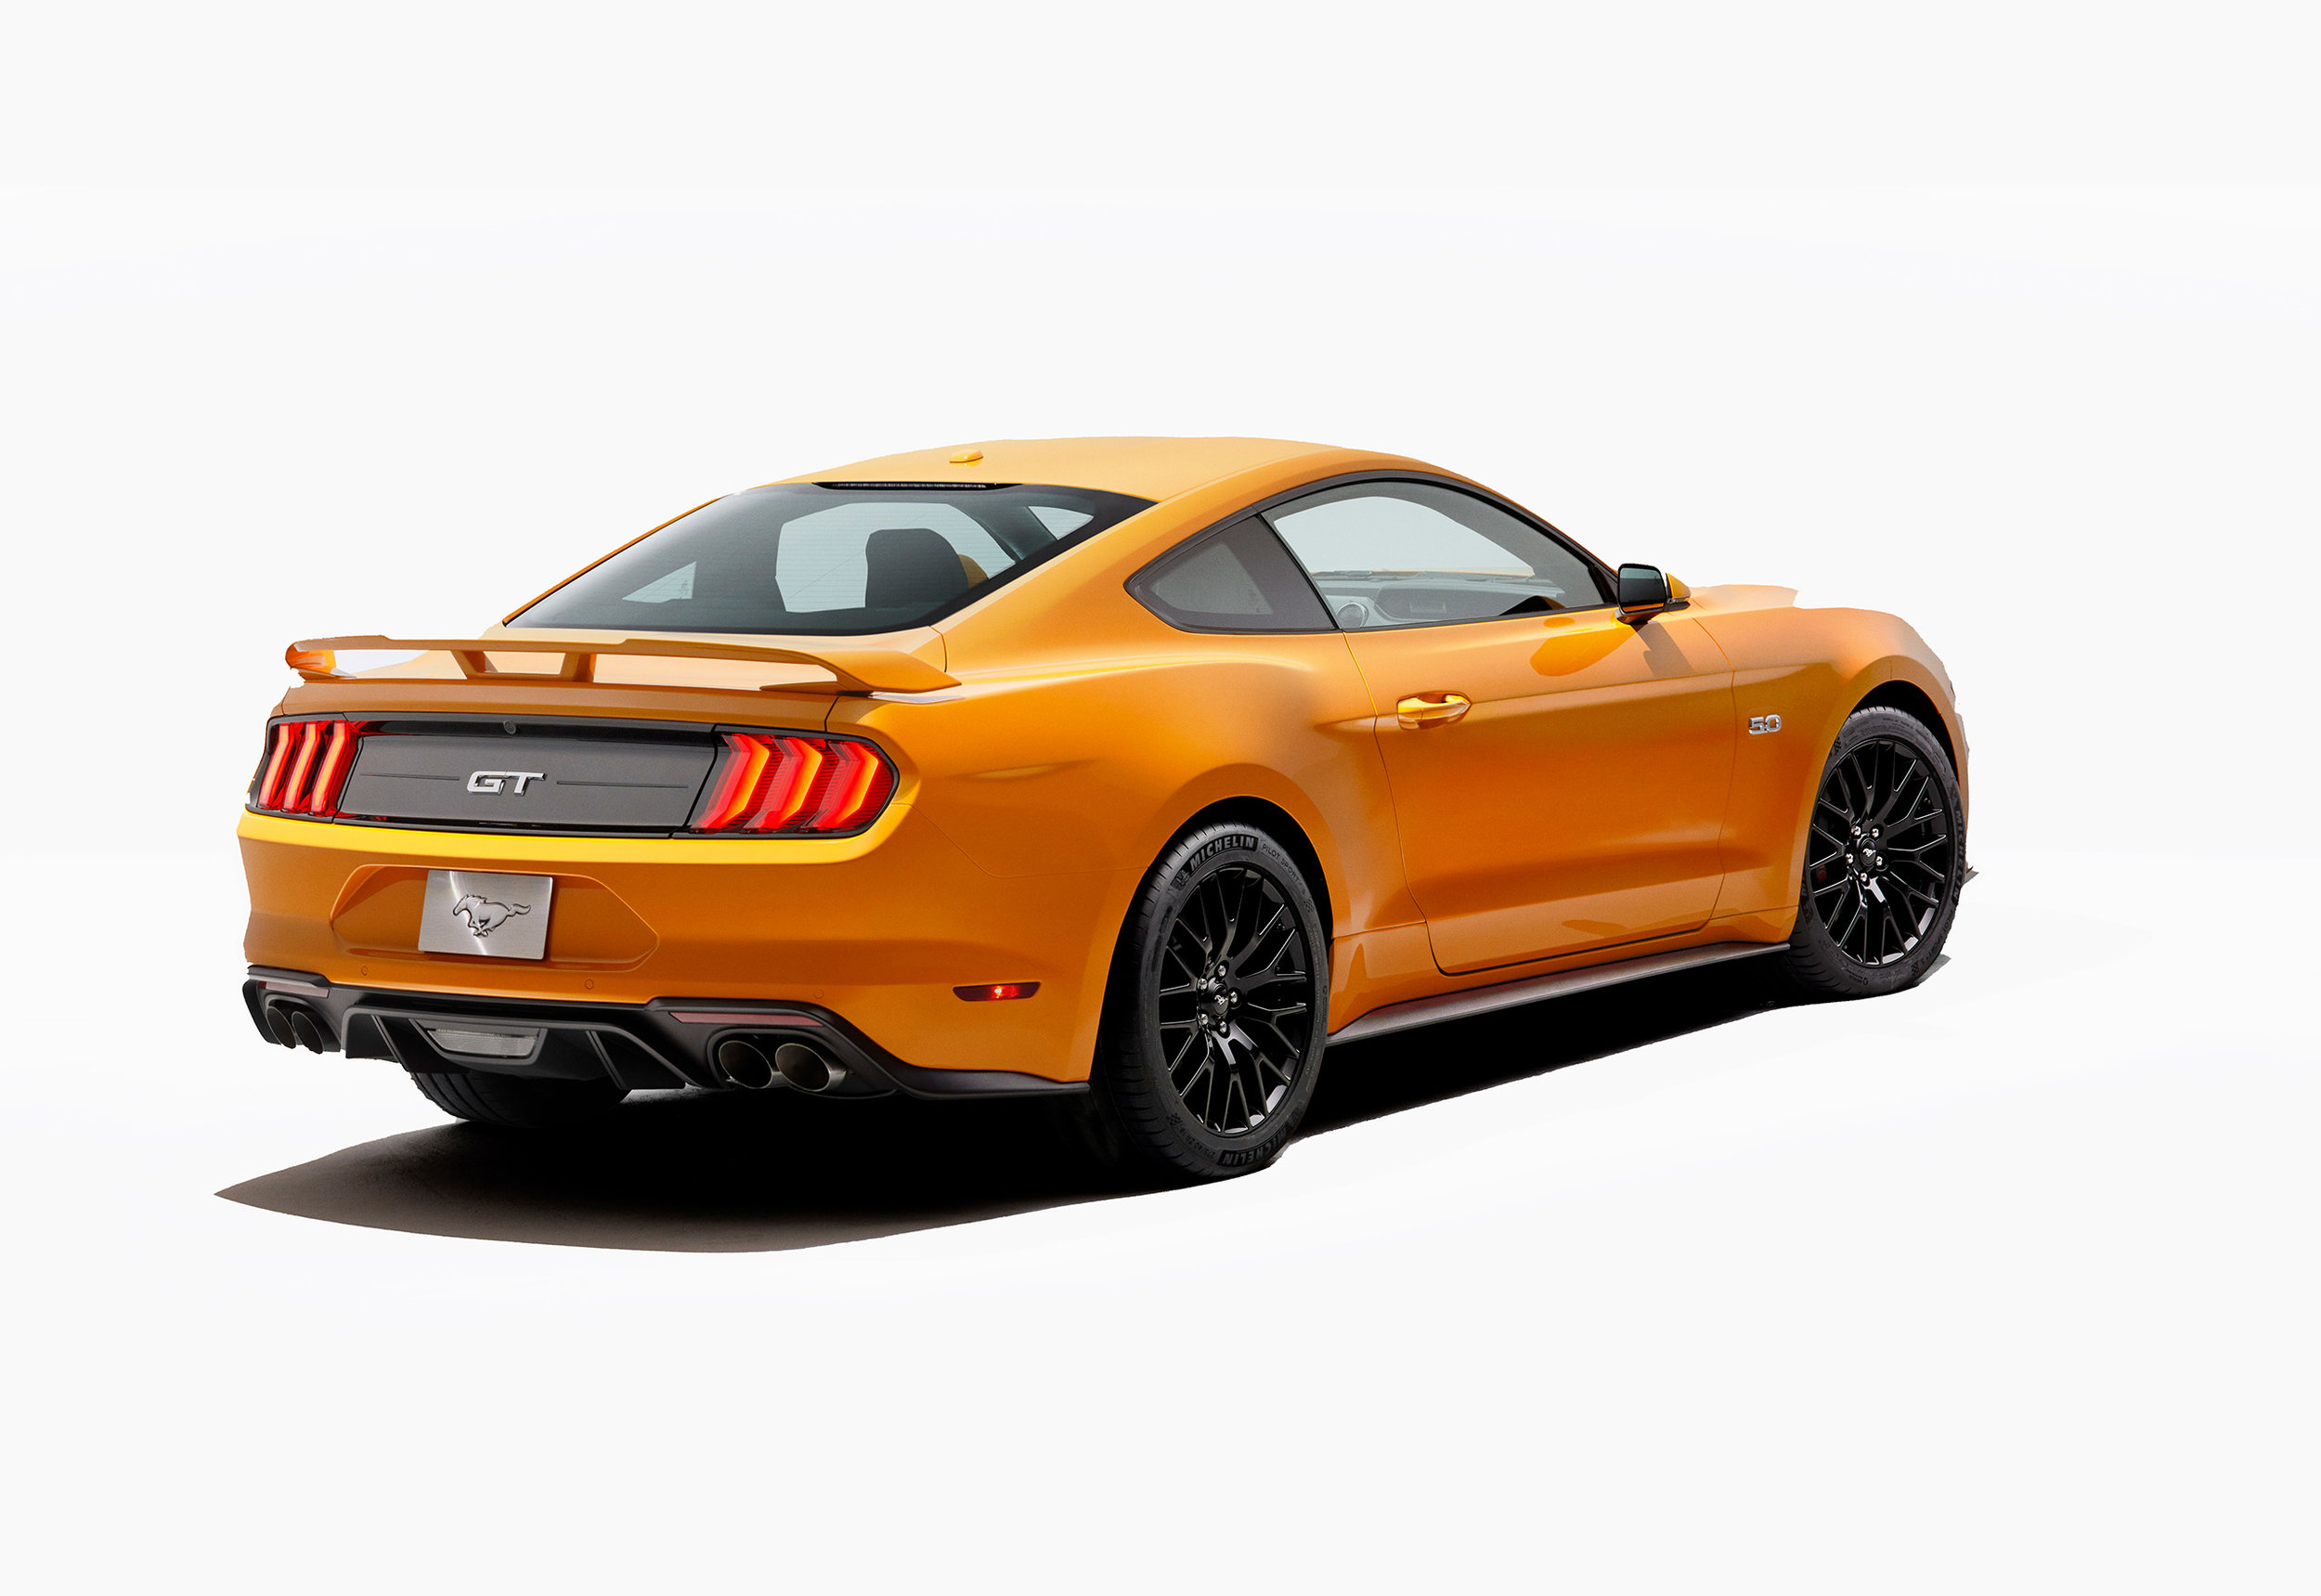 New-Ford-Mustang-V8-GT-with-Performace-Pack-in-Orange-Fury-7.jpg